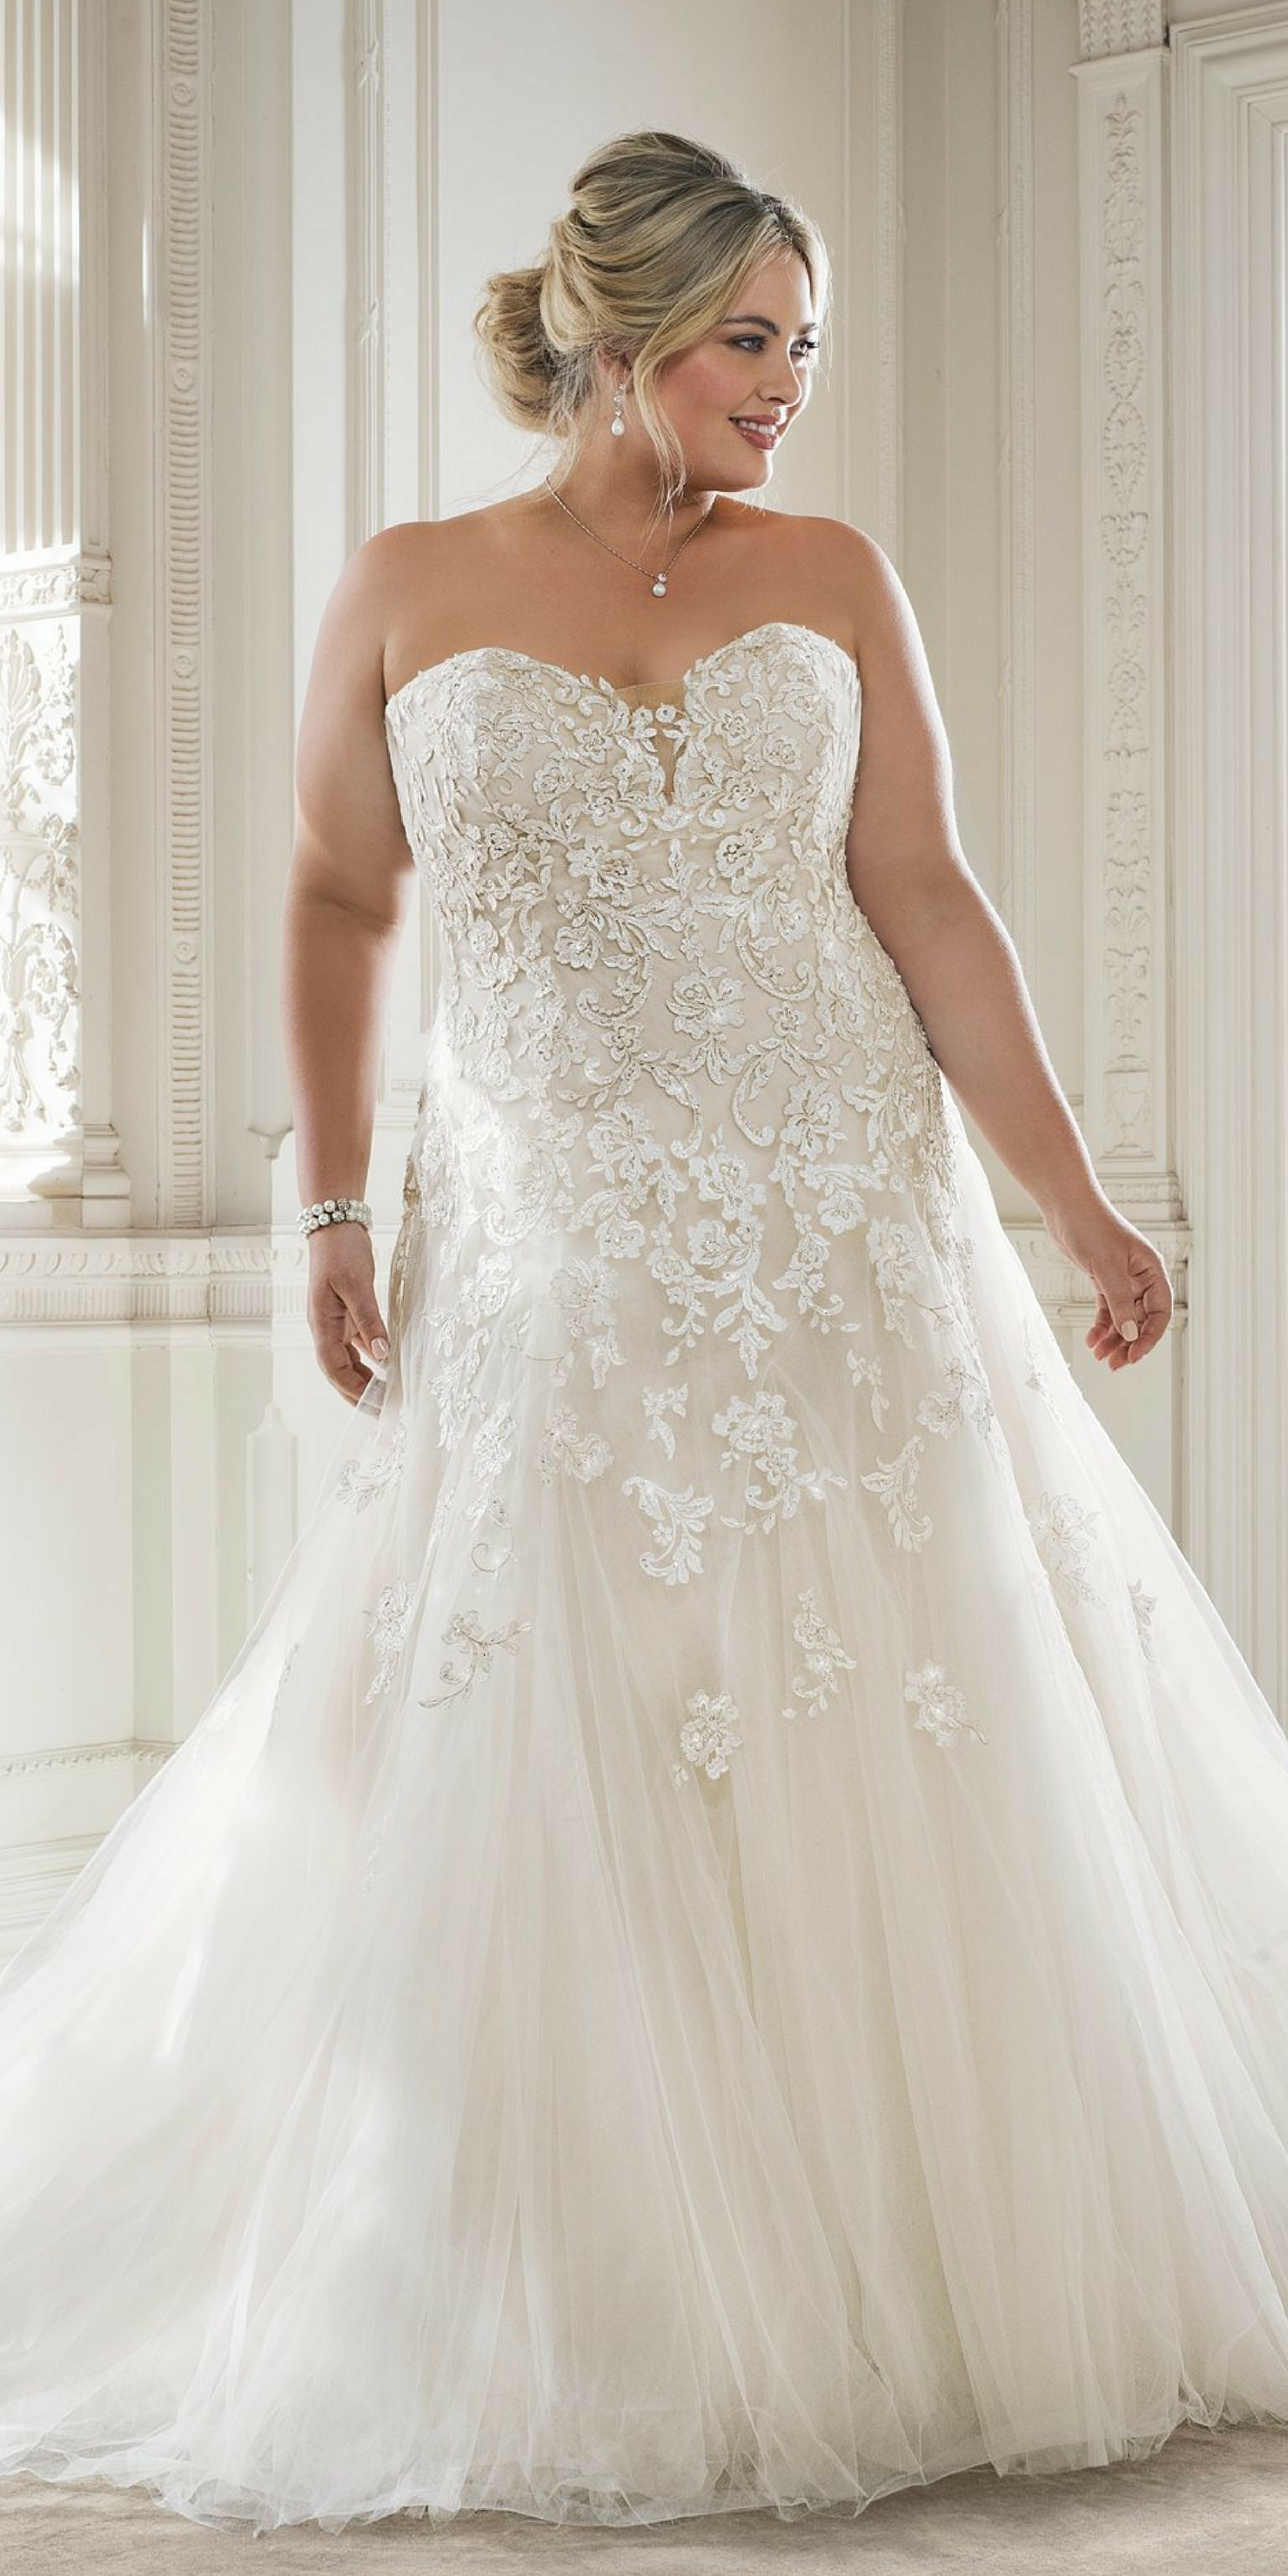 Plus size party dresses for weddings  Beautiful Summer plus size curvy women Wedding dresses On Beach